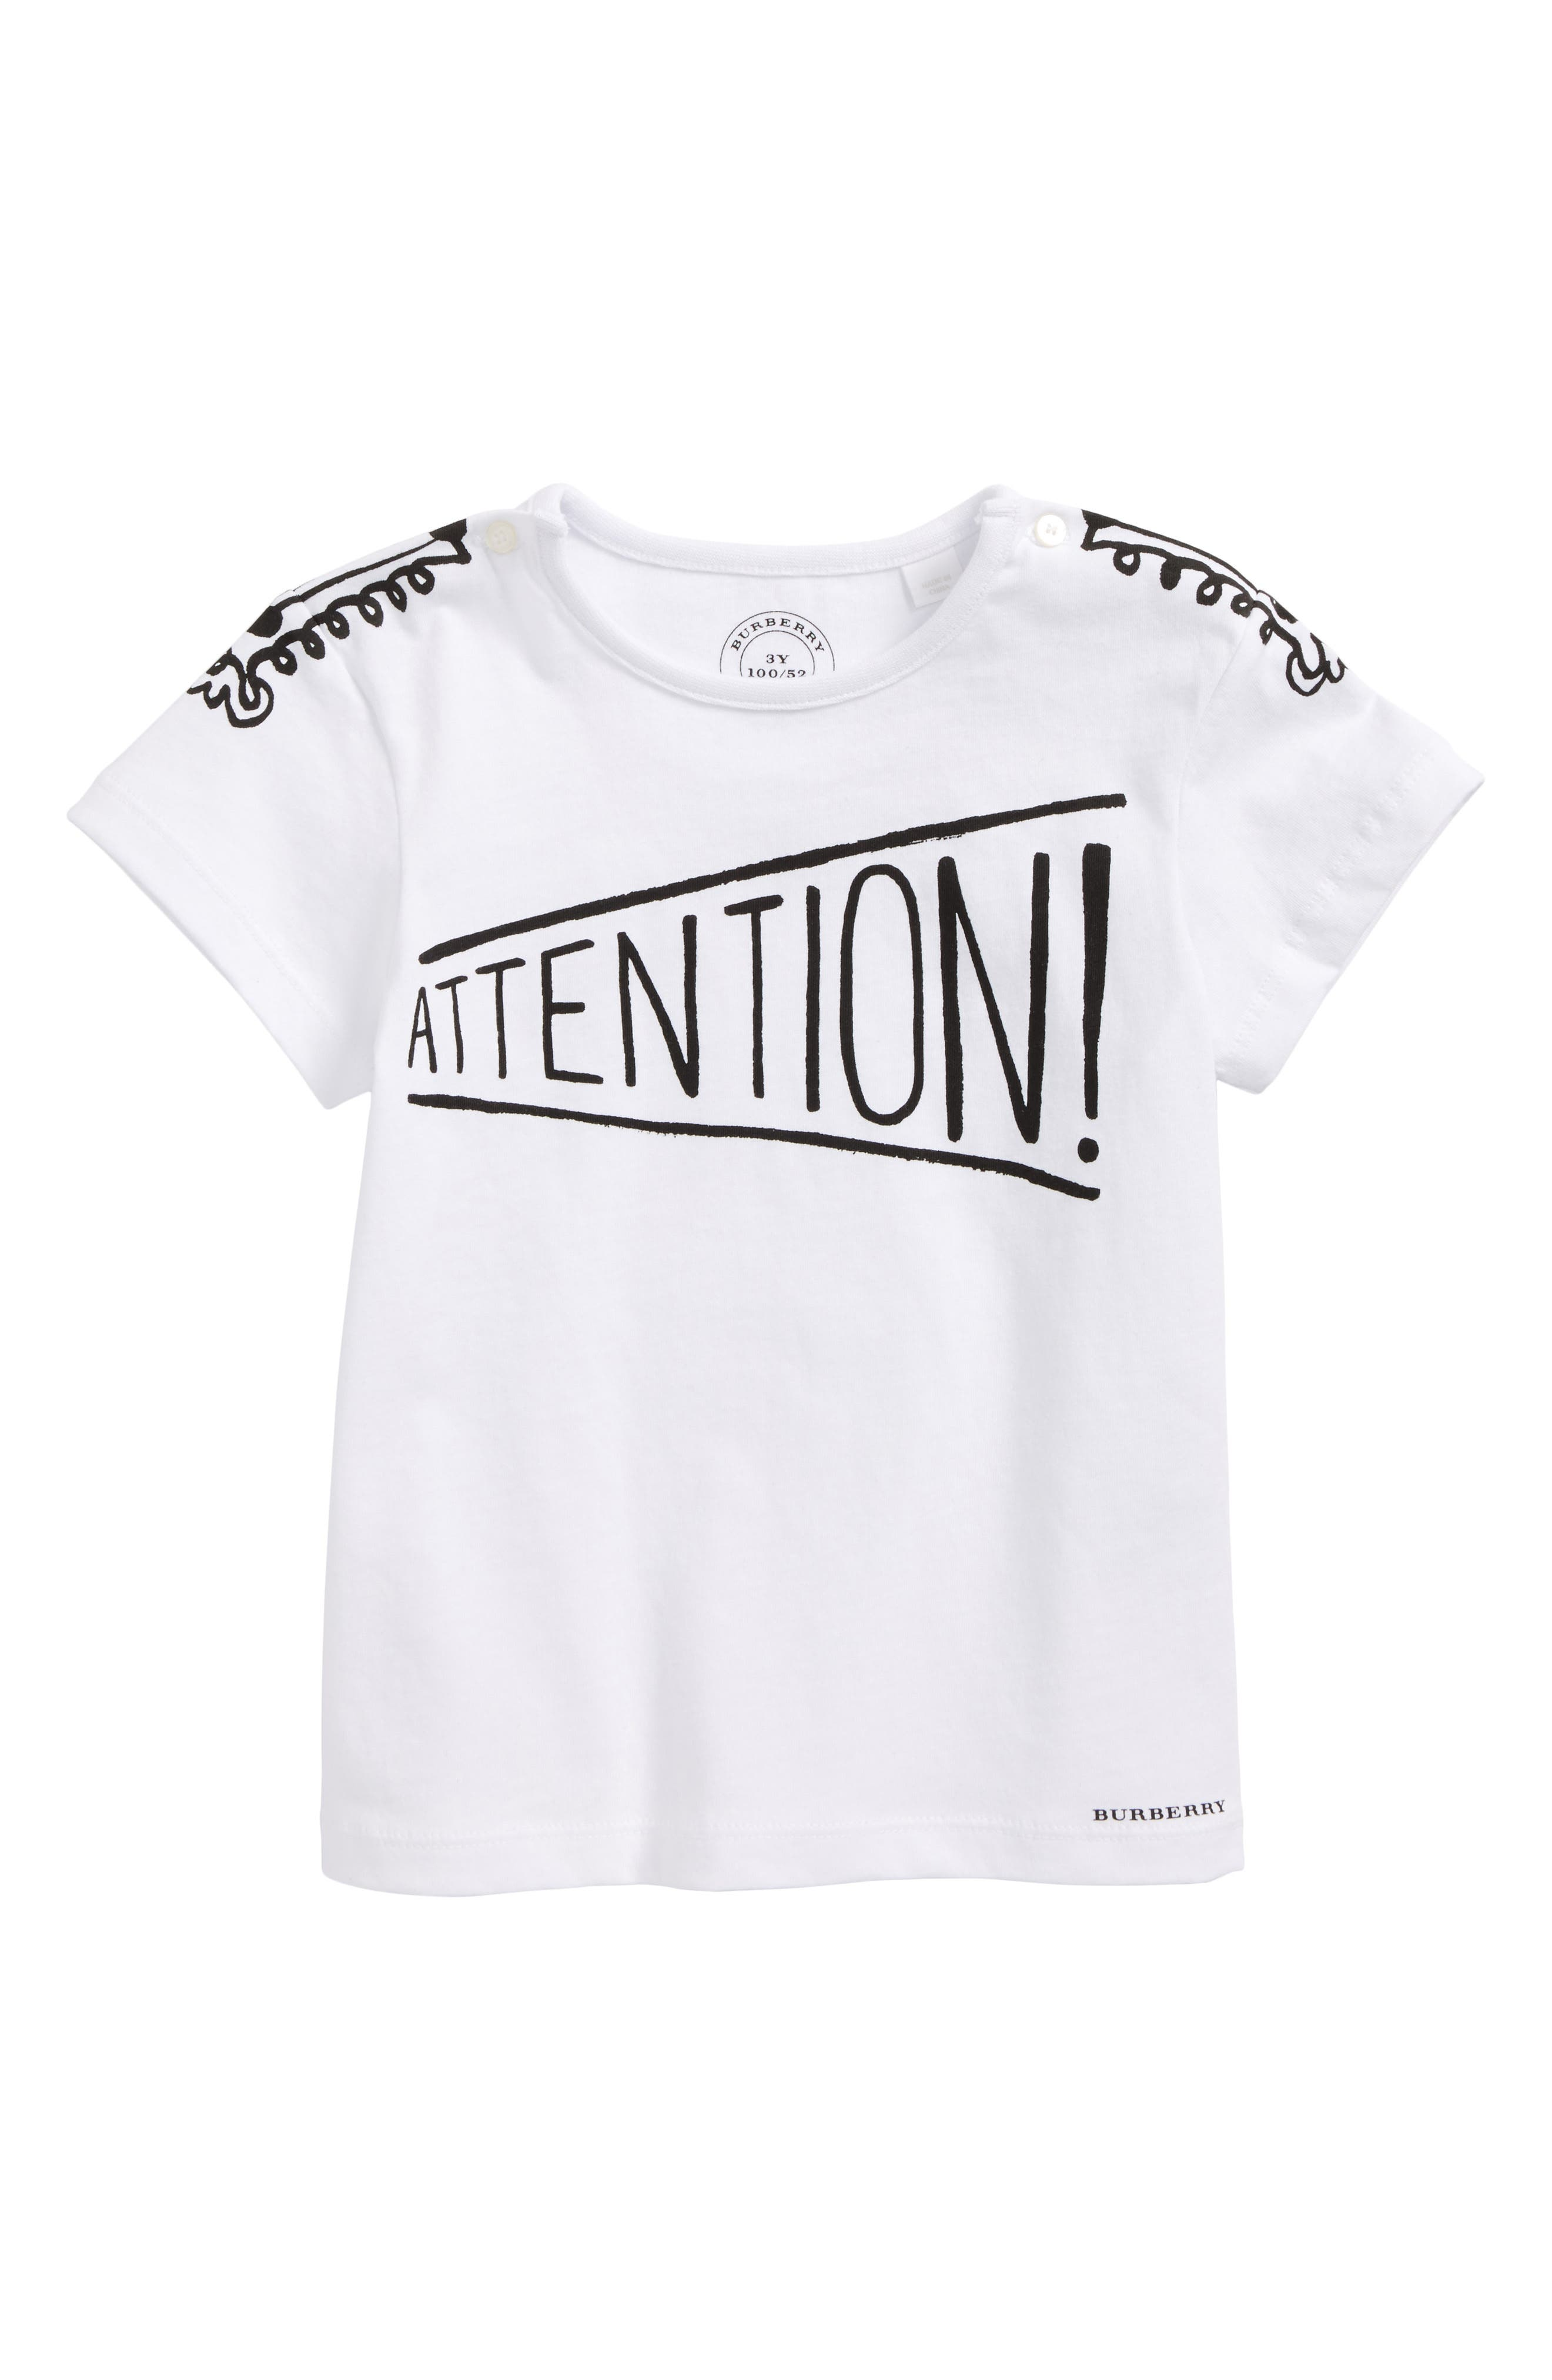 Attention T-Shirt,                         Main,                         color, 100